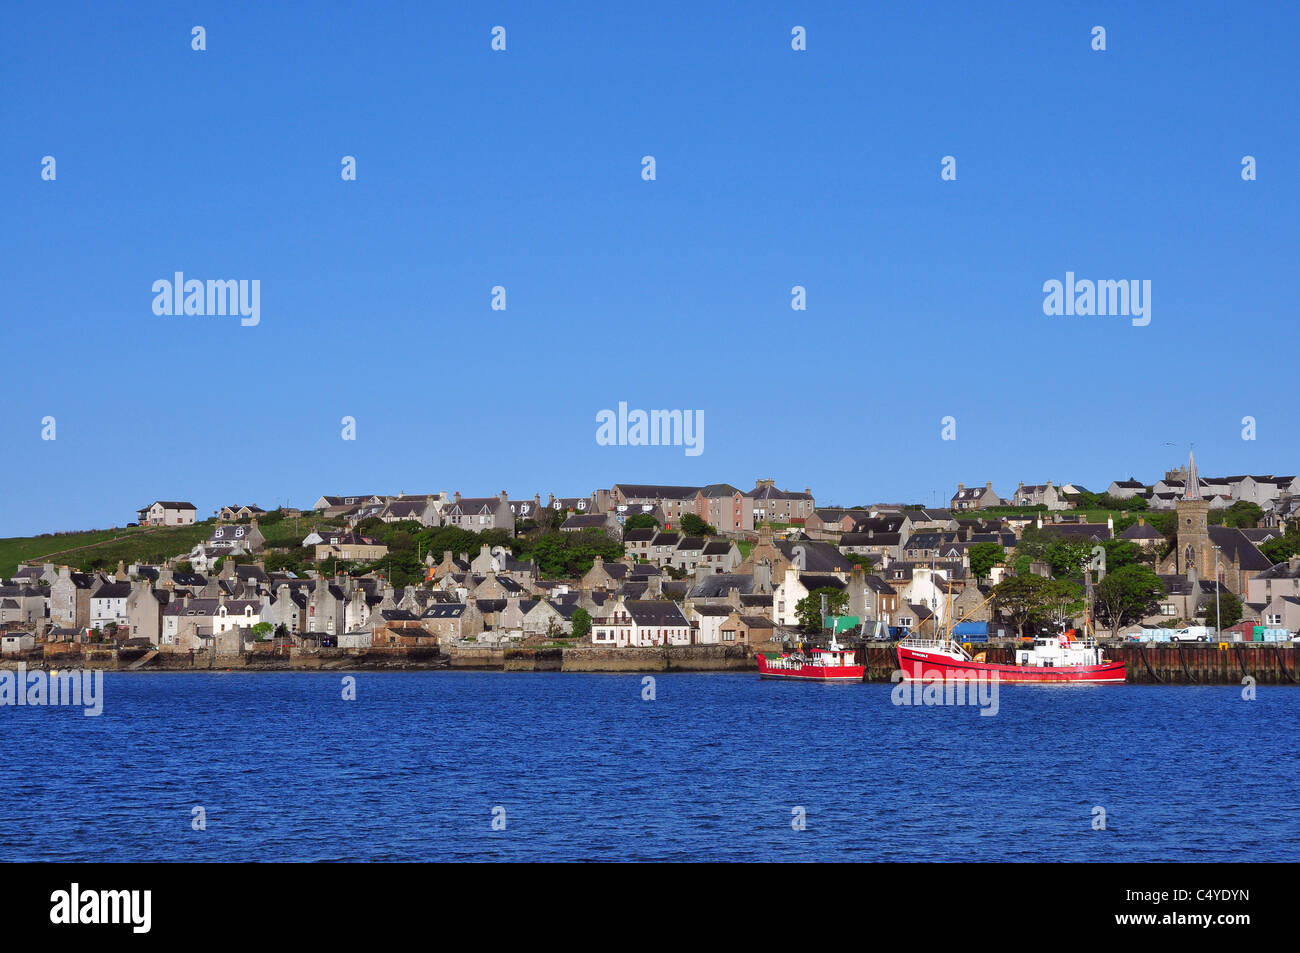 Town of Stromness on Mainland, Orkney, Scotland. Stock Photo